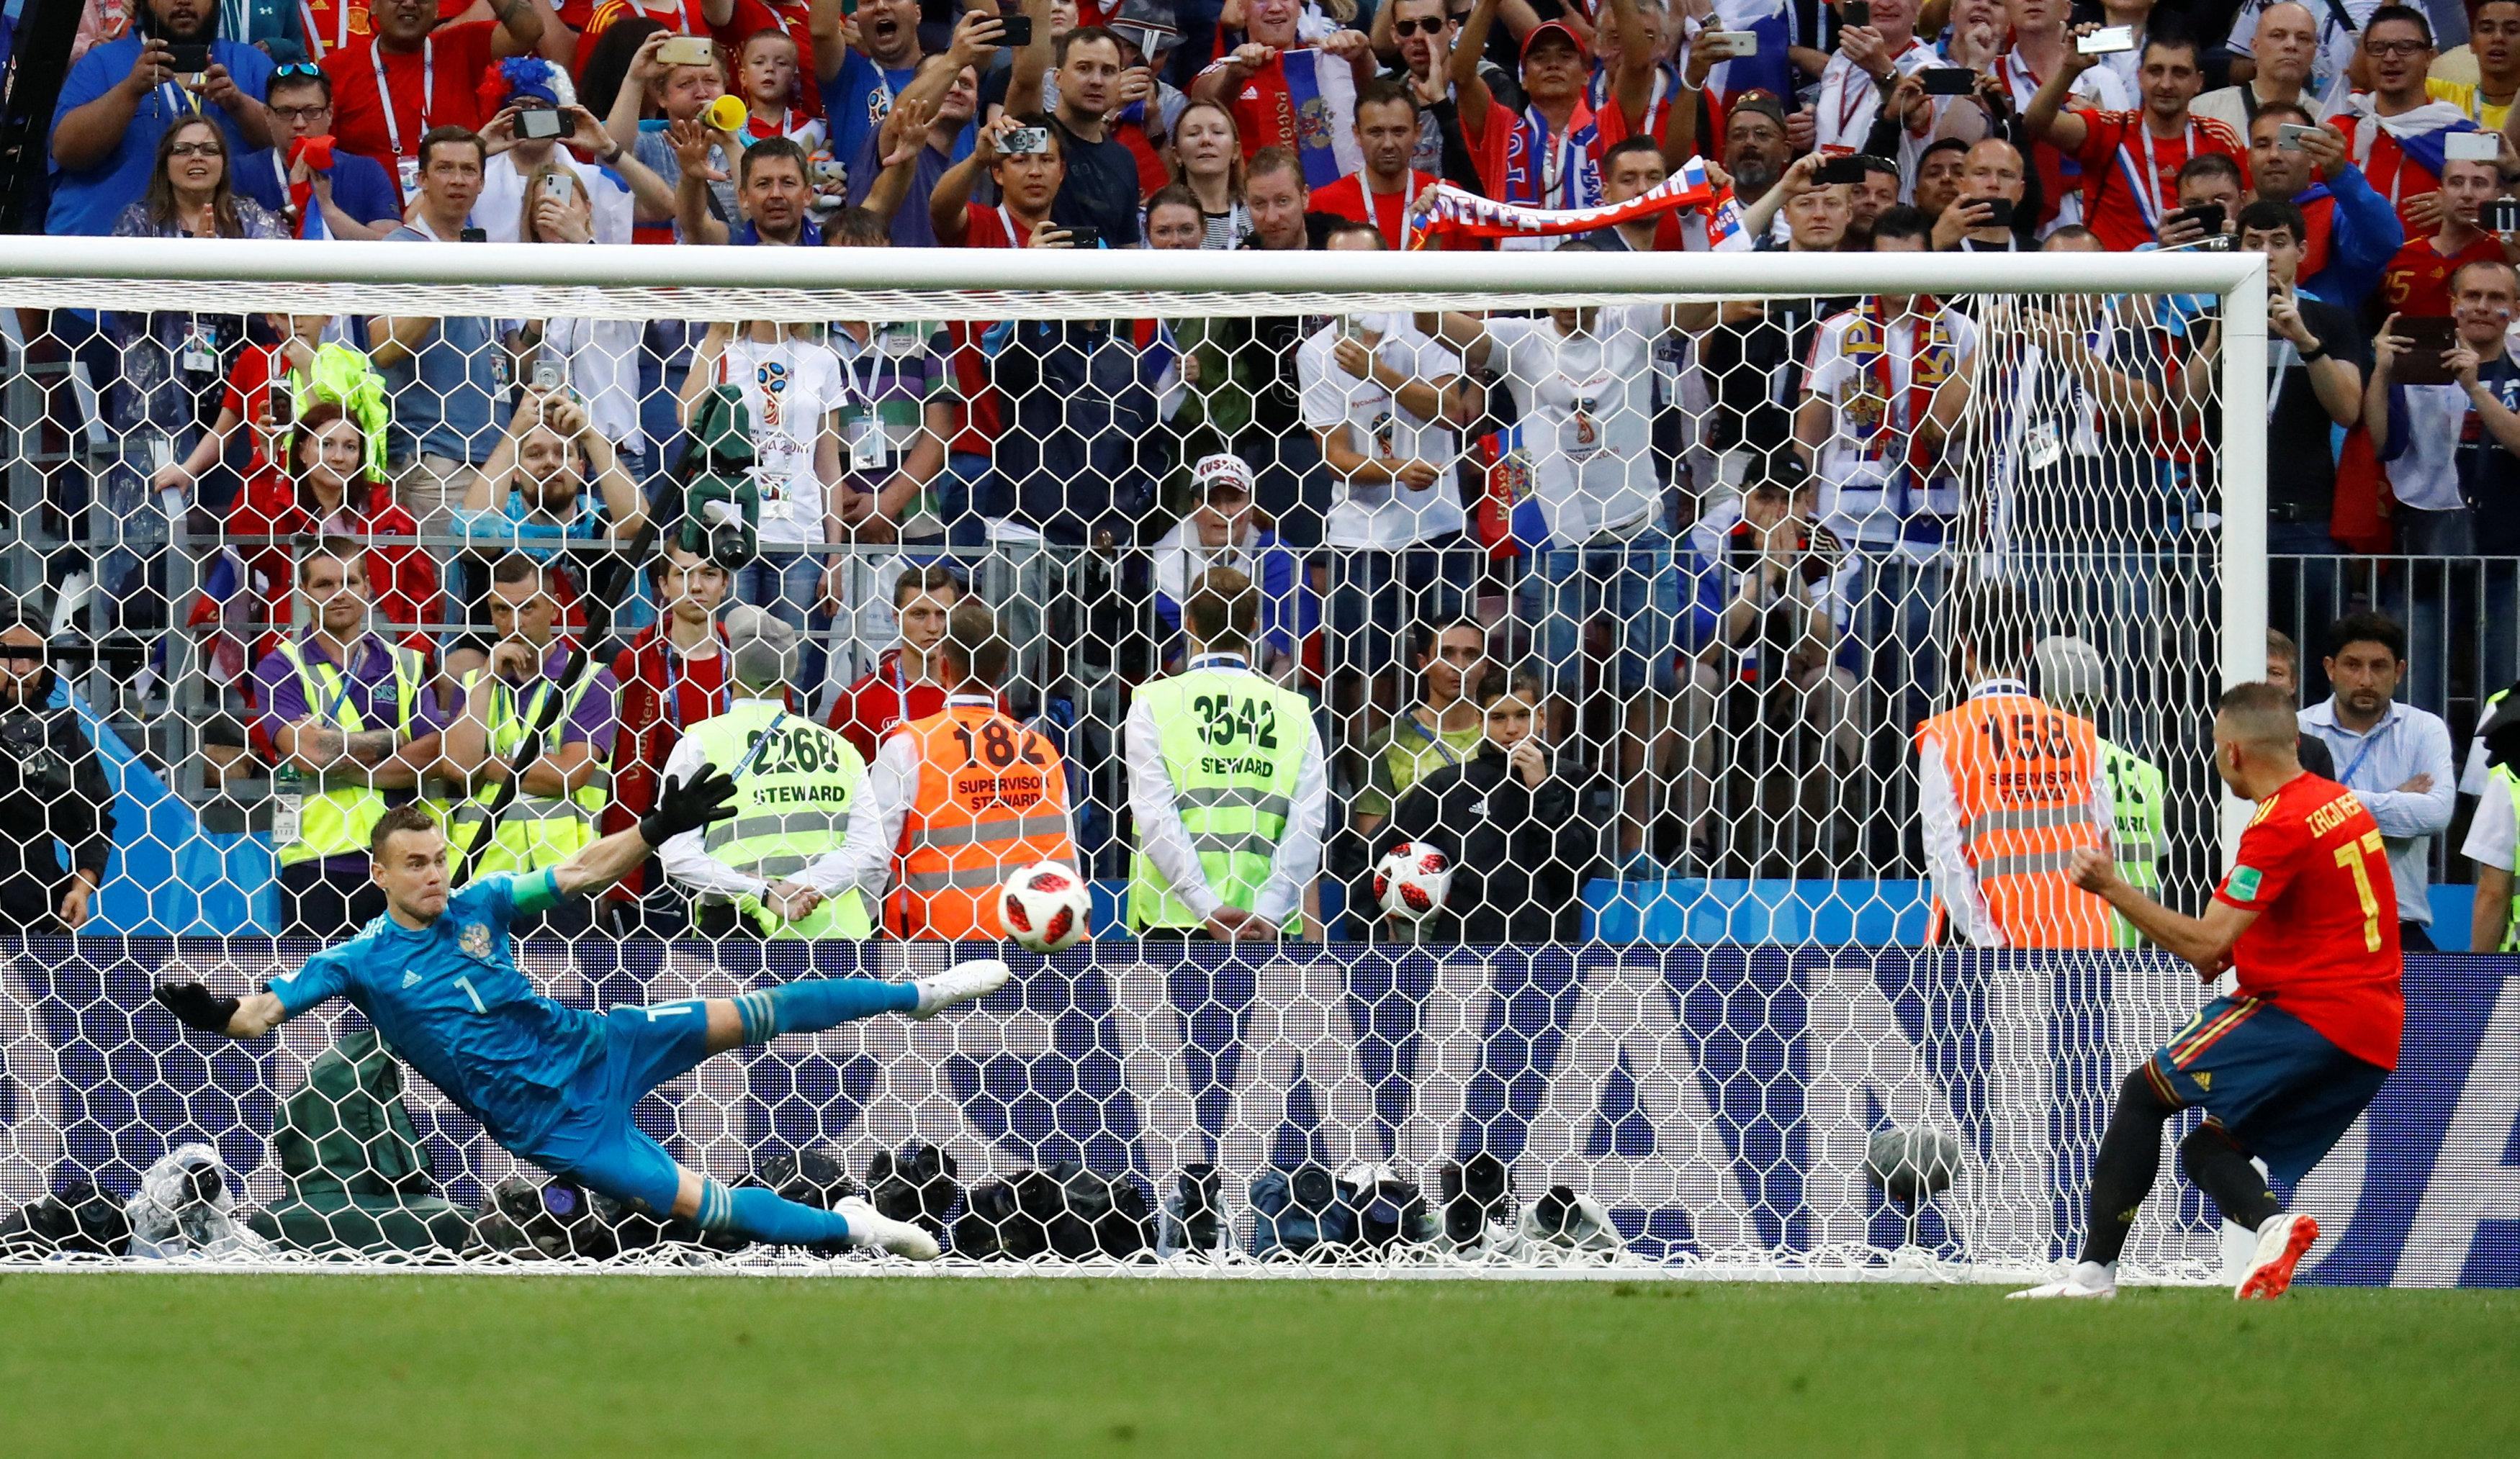 Unlikely to to be on penalties…